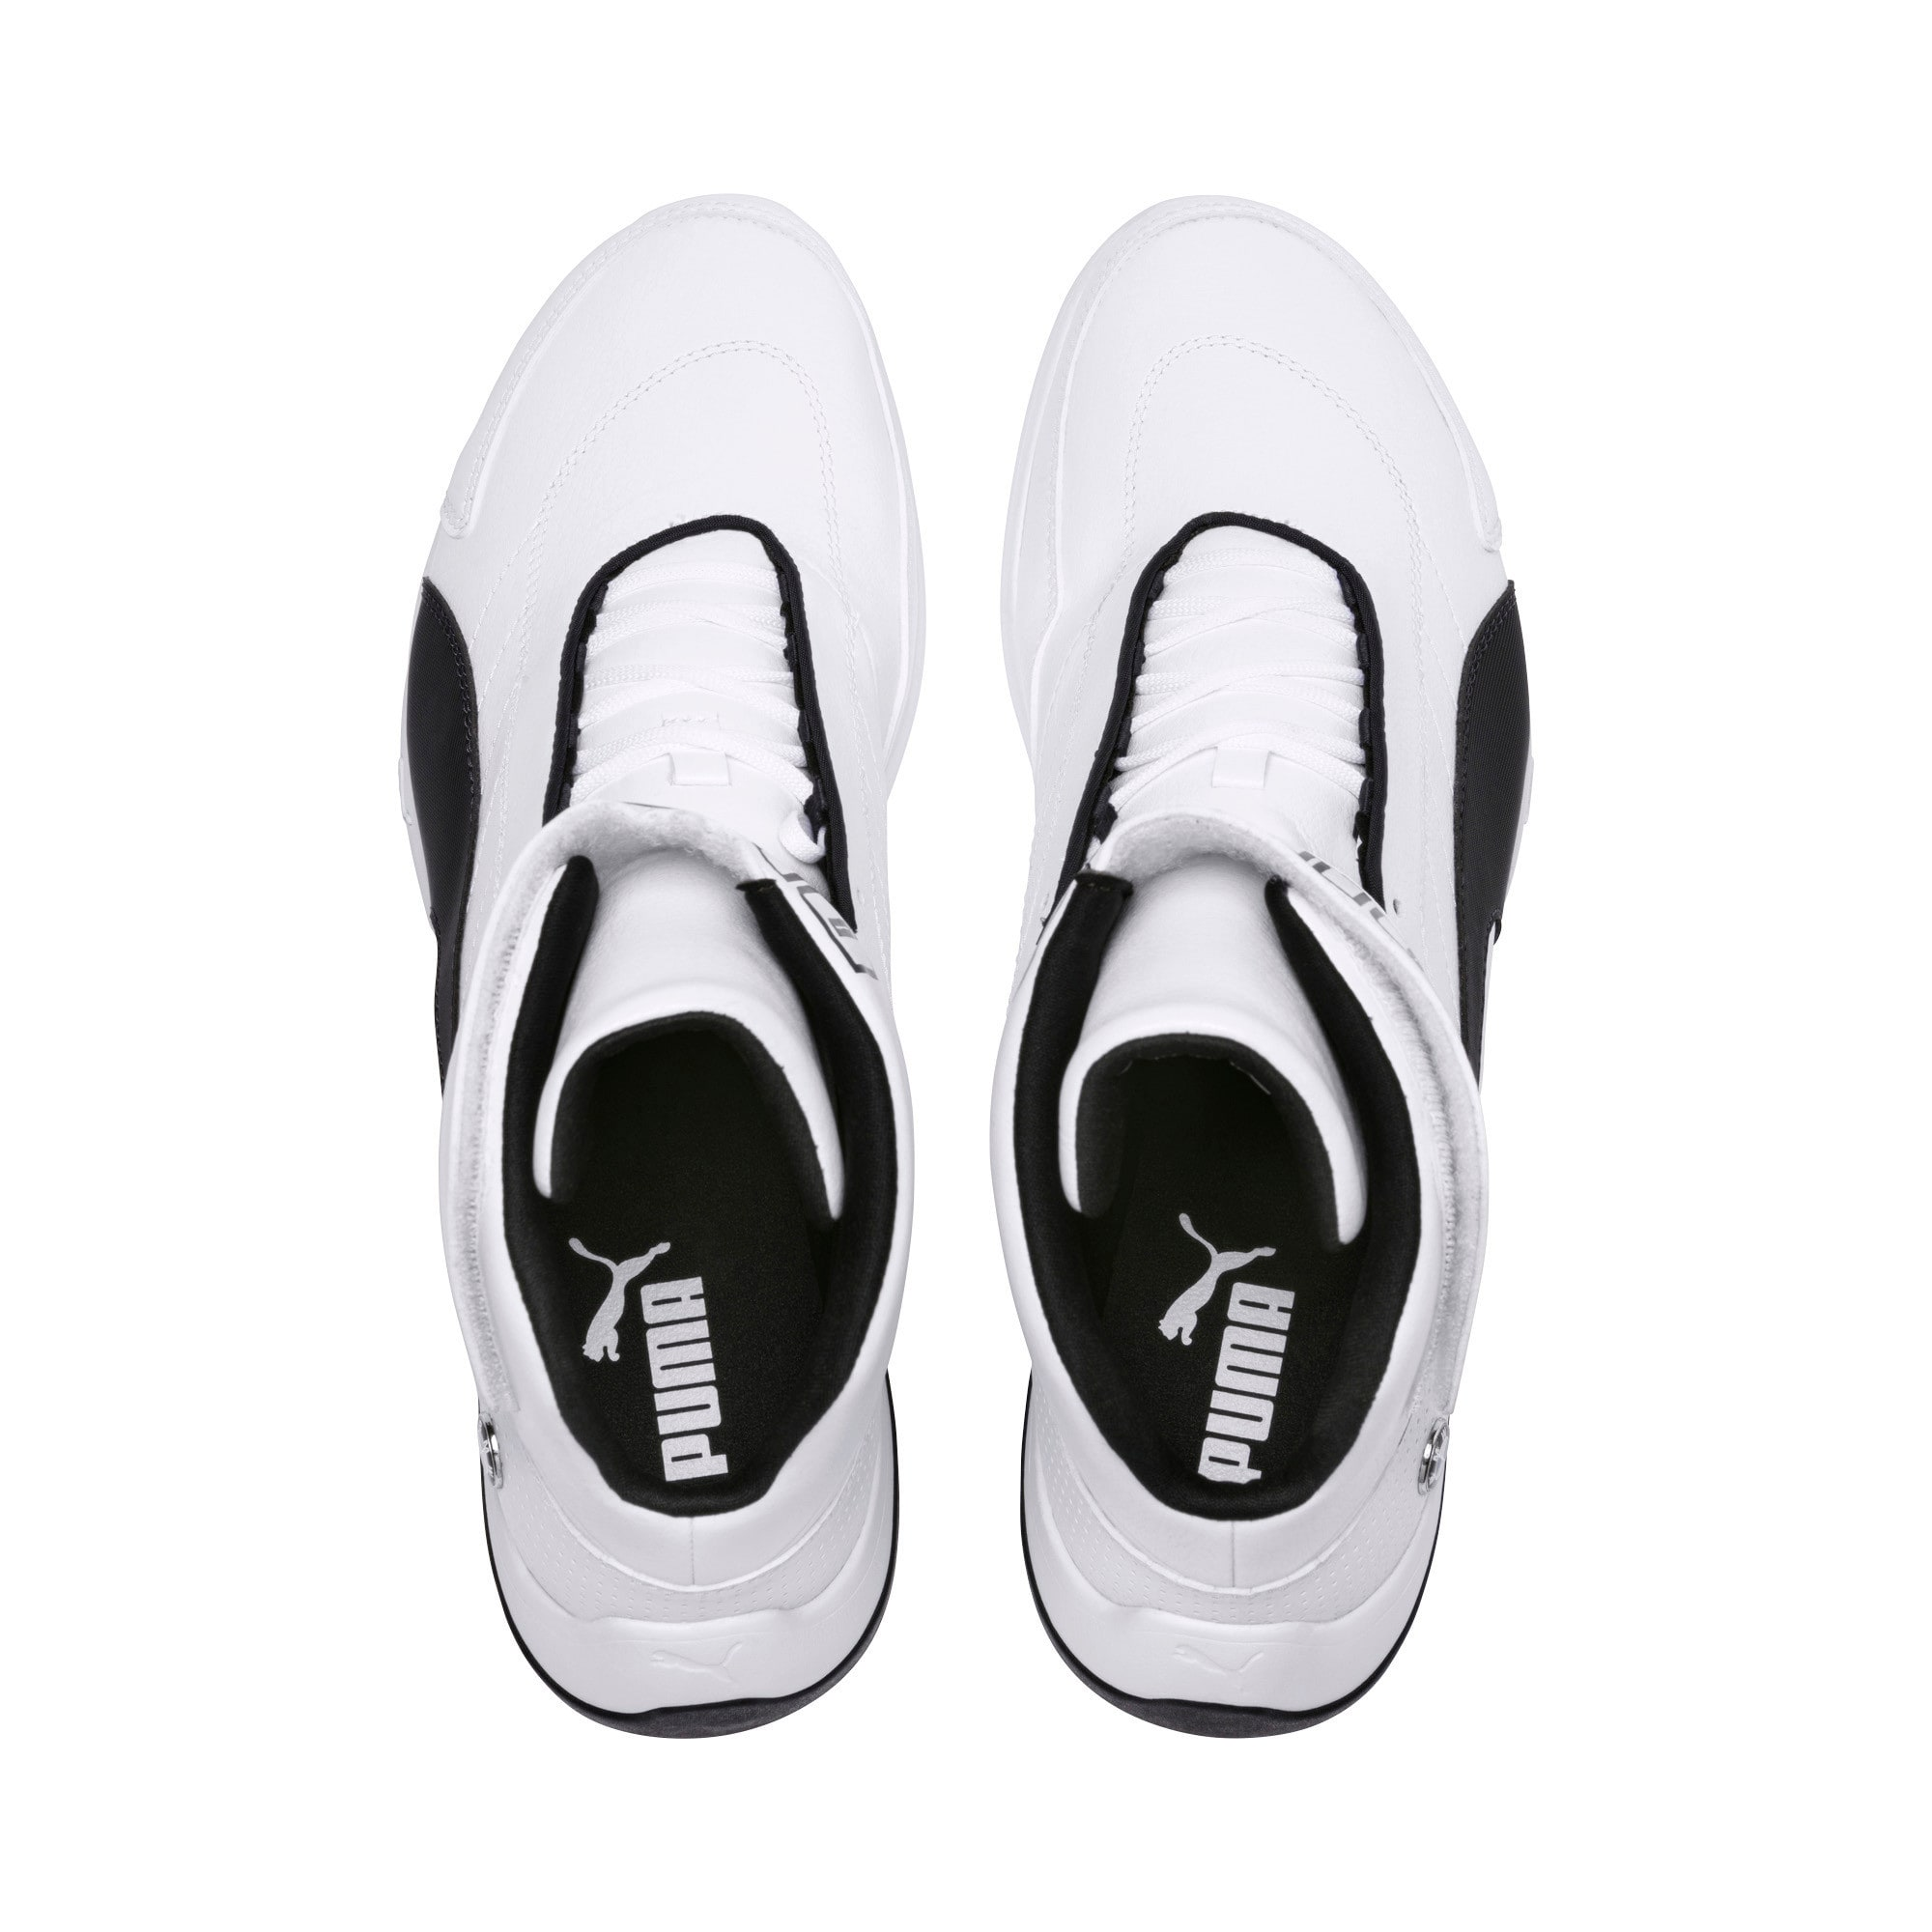 BMW M Motorsport Kart Cat III Mid Men's Shoes, Puma White-Anthracite, large